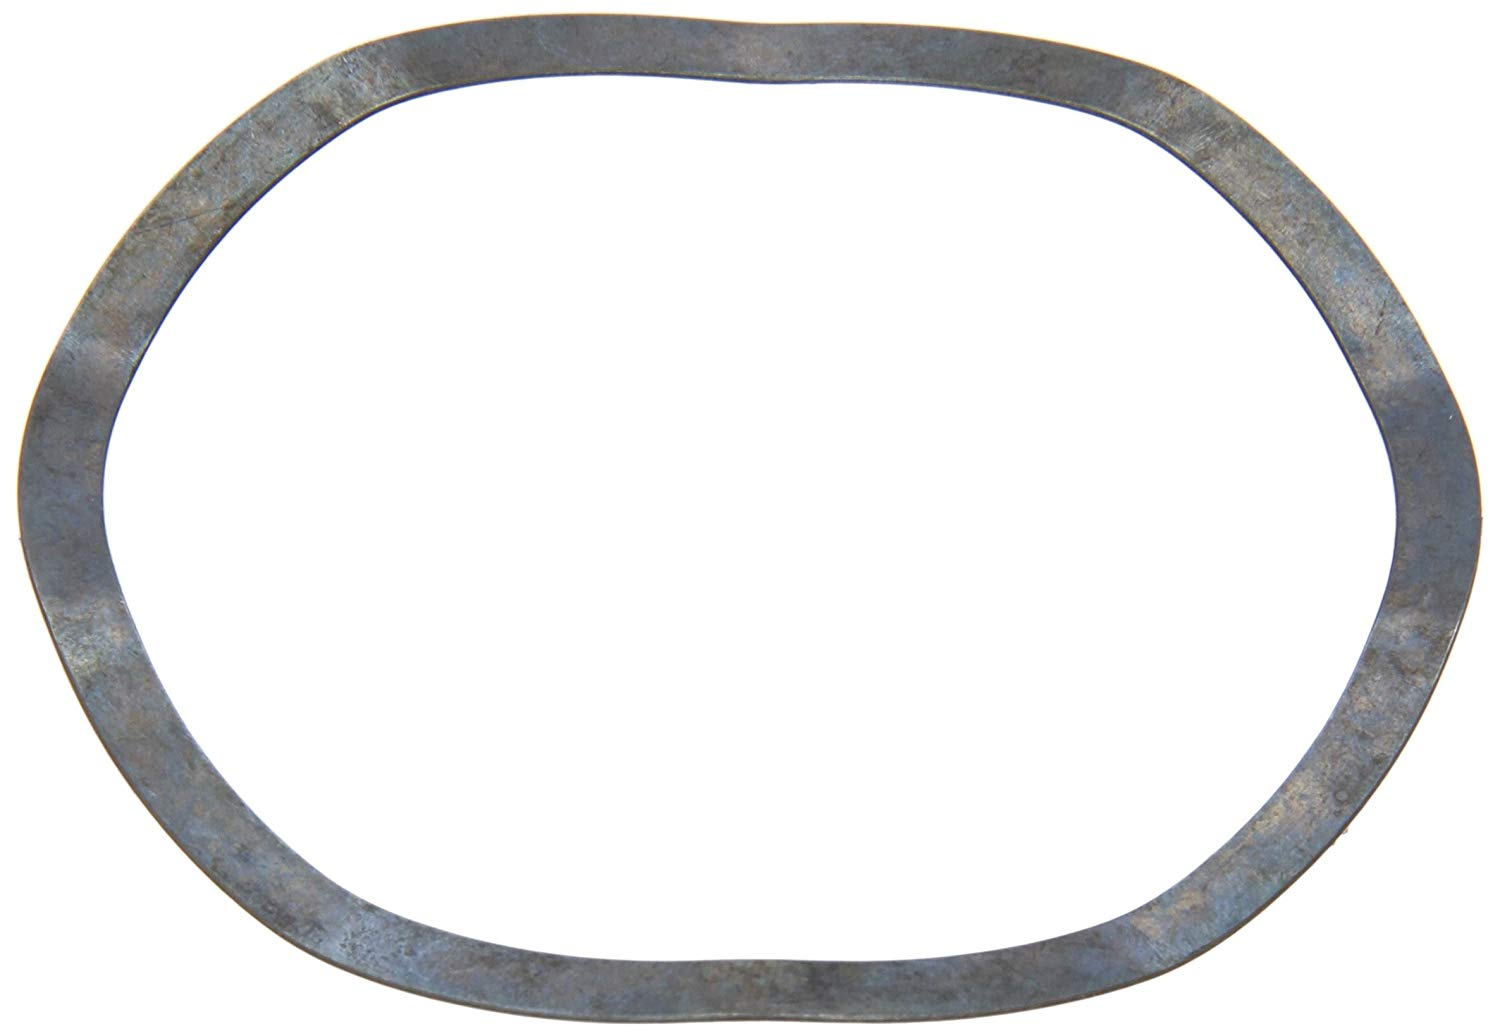 "Compression Type Wave Washer, Carbon Steel, 5 Waves, Inch, 2.913"" ID, 3.307"" OD, 0.02"" Thick, 3.346"" Bearing OD, 420lbs/in Spring Rate, 72.8lbs Load, (Pack of 10)"